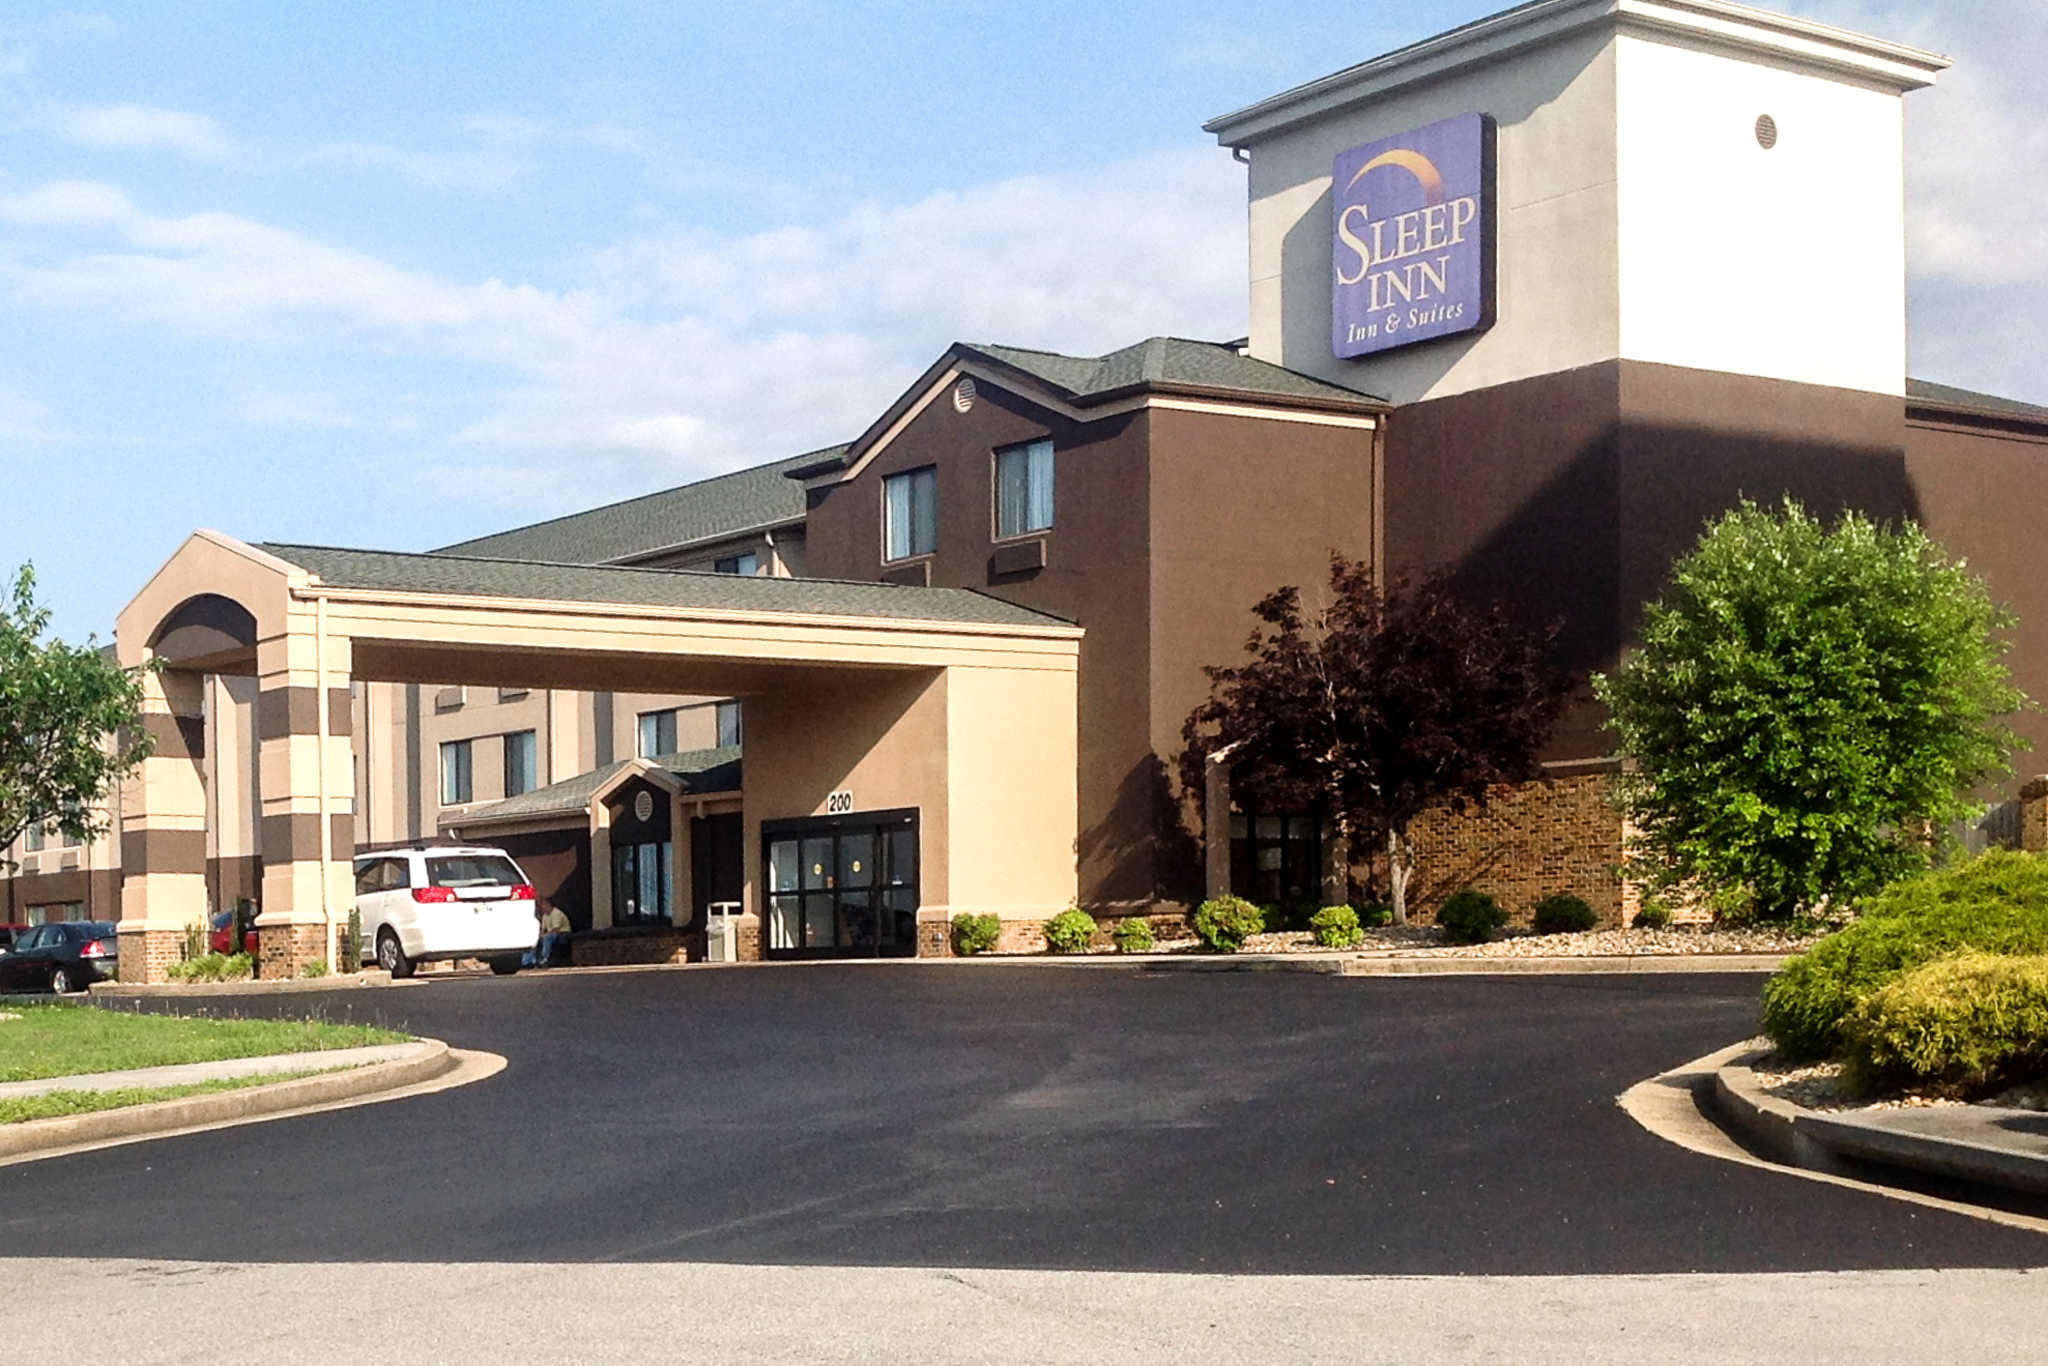 Sleep inn suites kingsport tn business directory for Lodging near bristol motor speedway